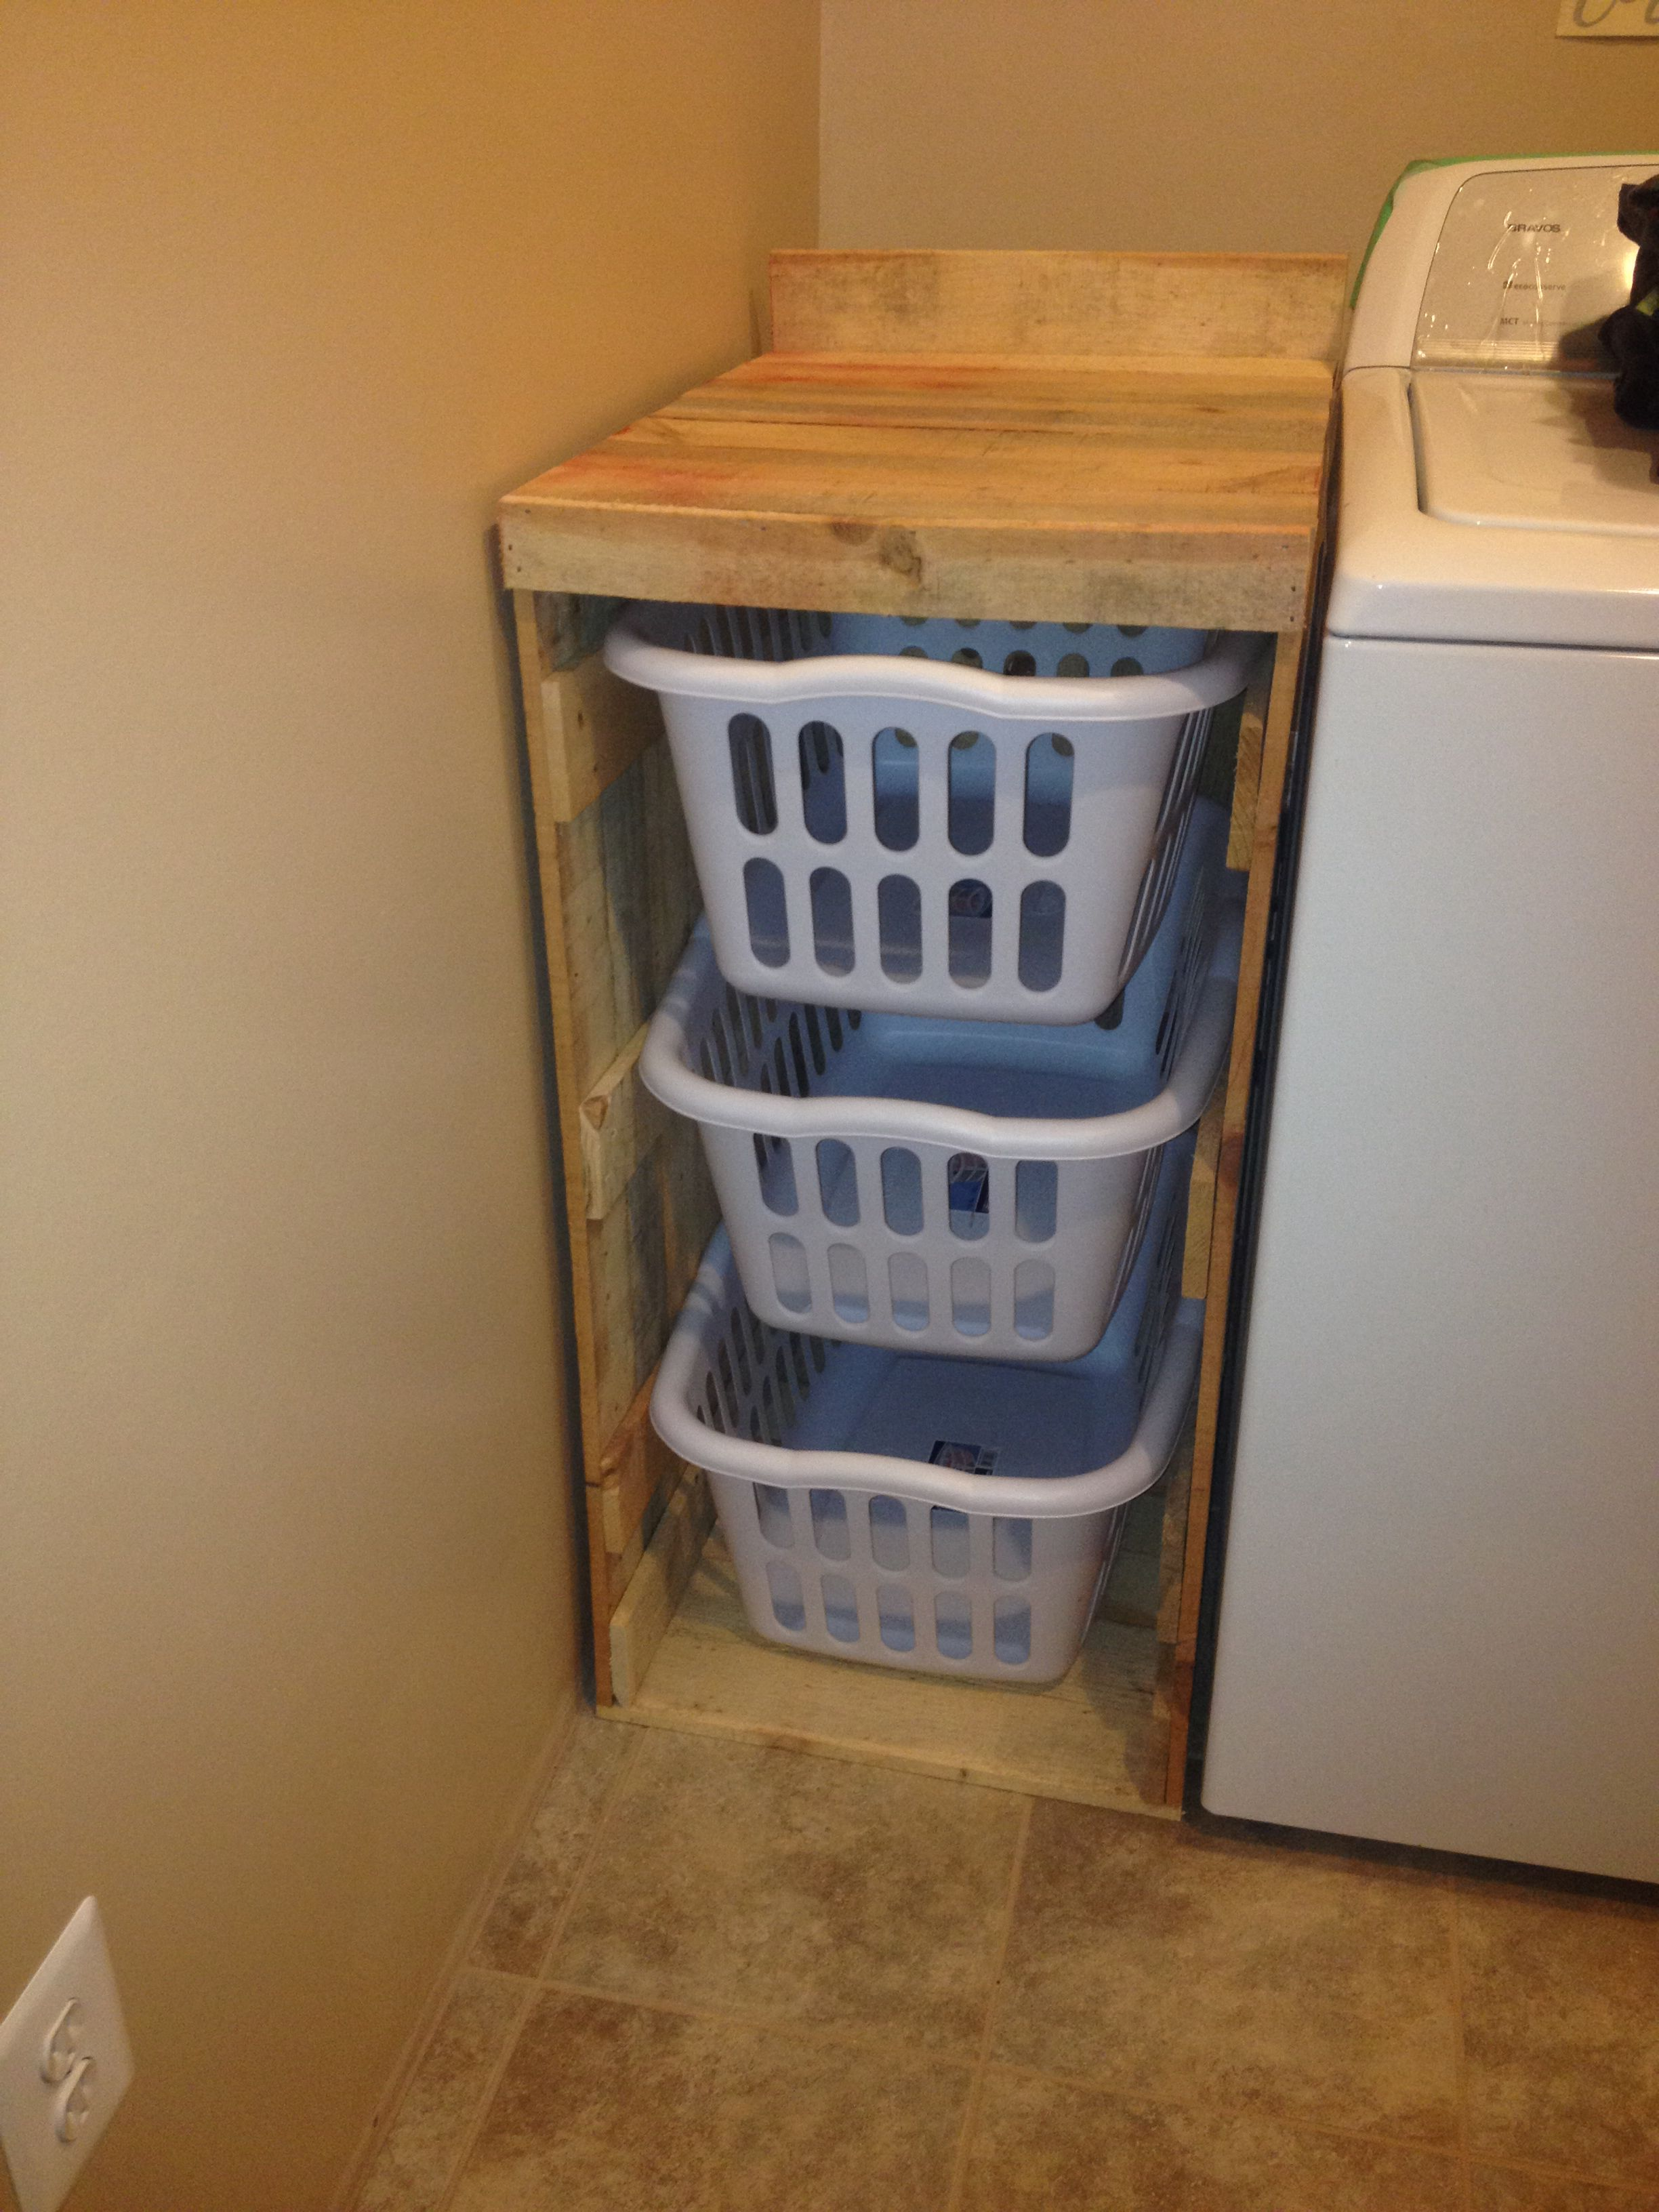 Laundry Basket Holder Laundry Room Baskets Laundry Basket Holder Laundry Room Diy